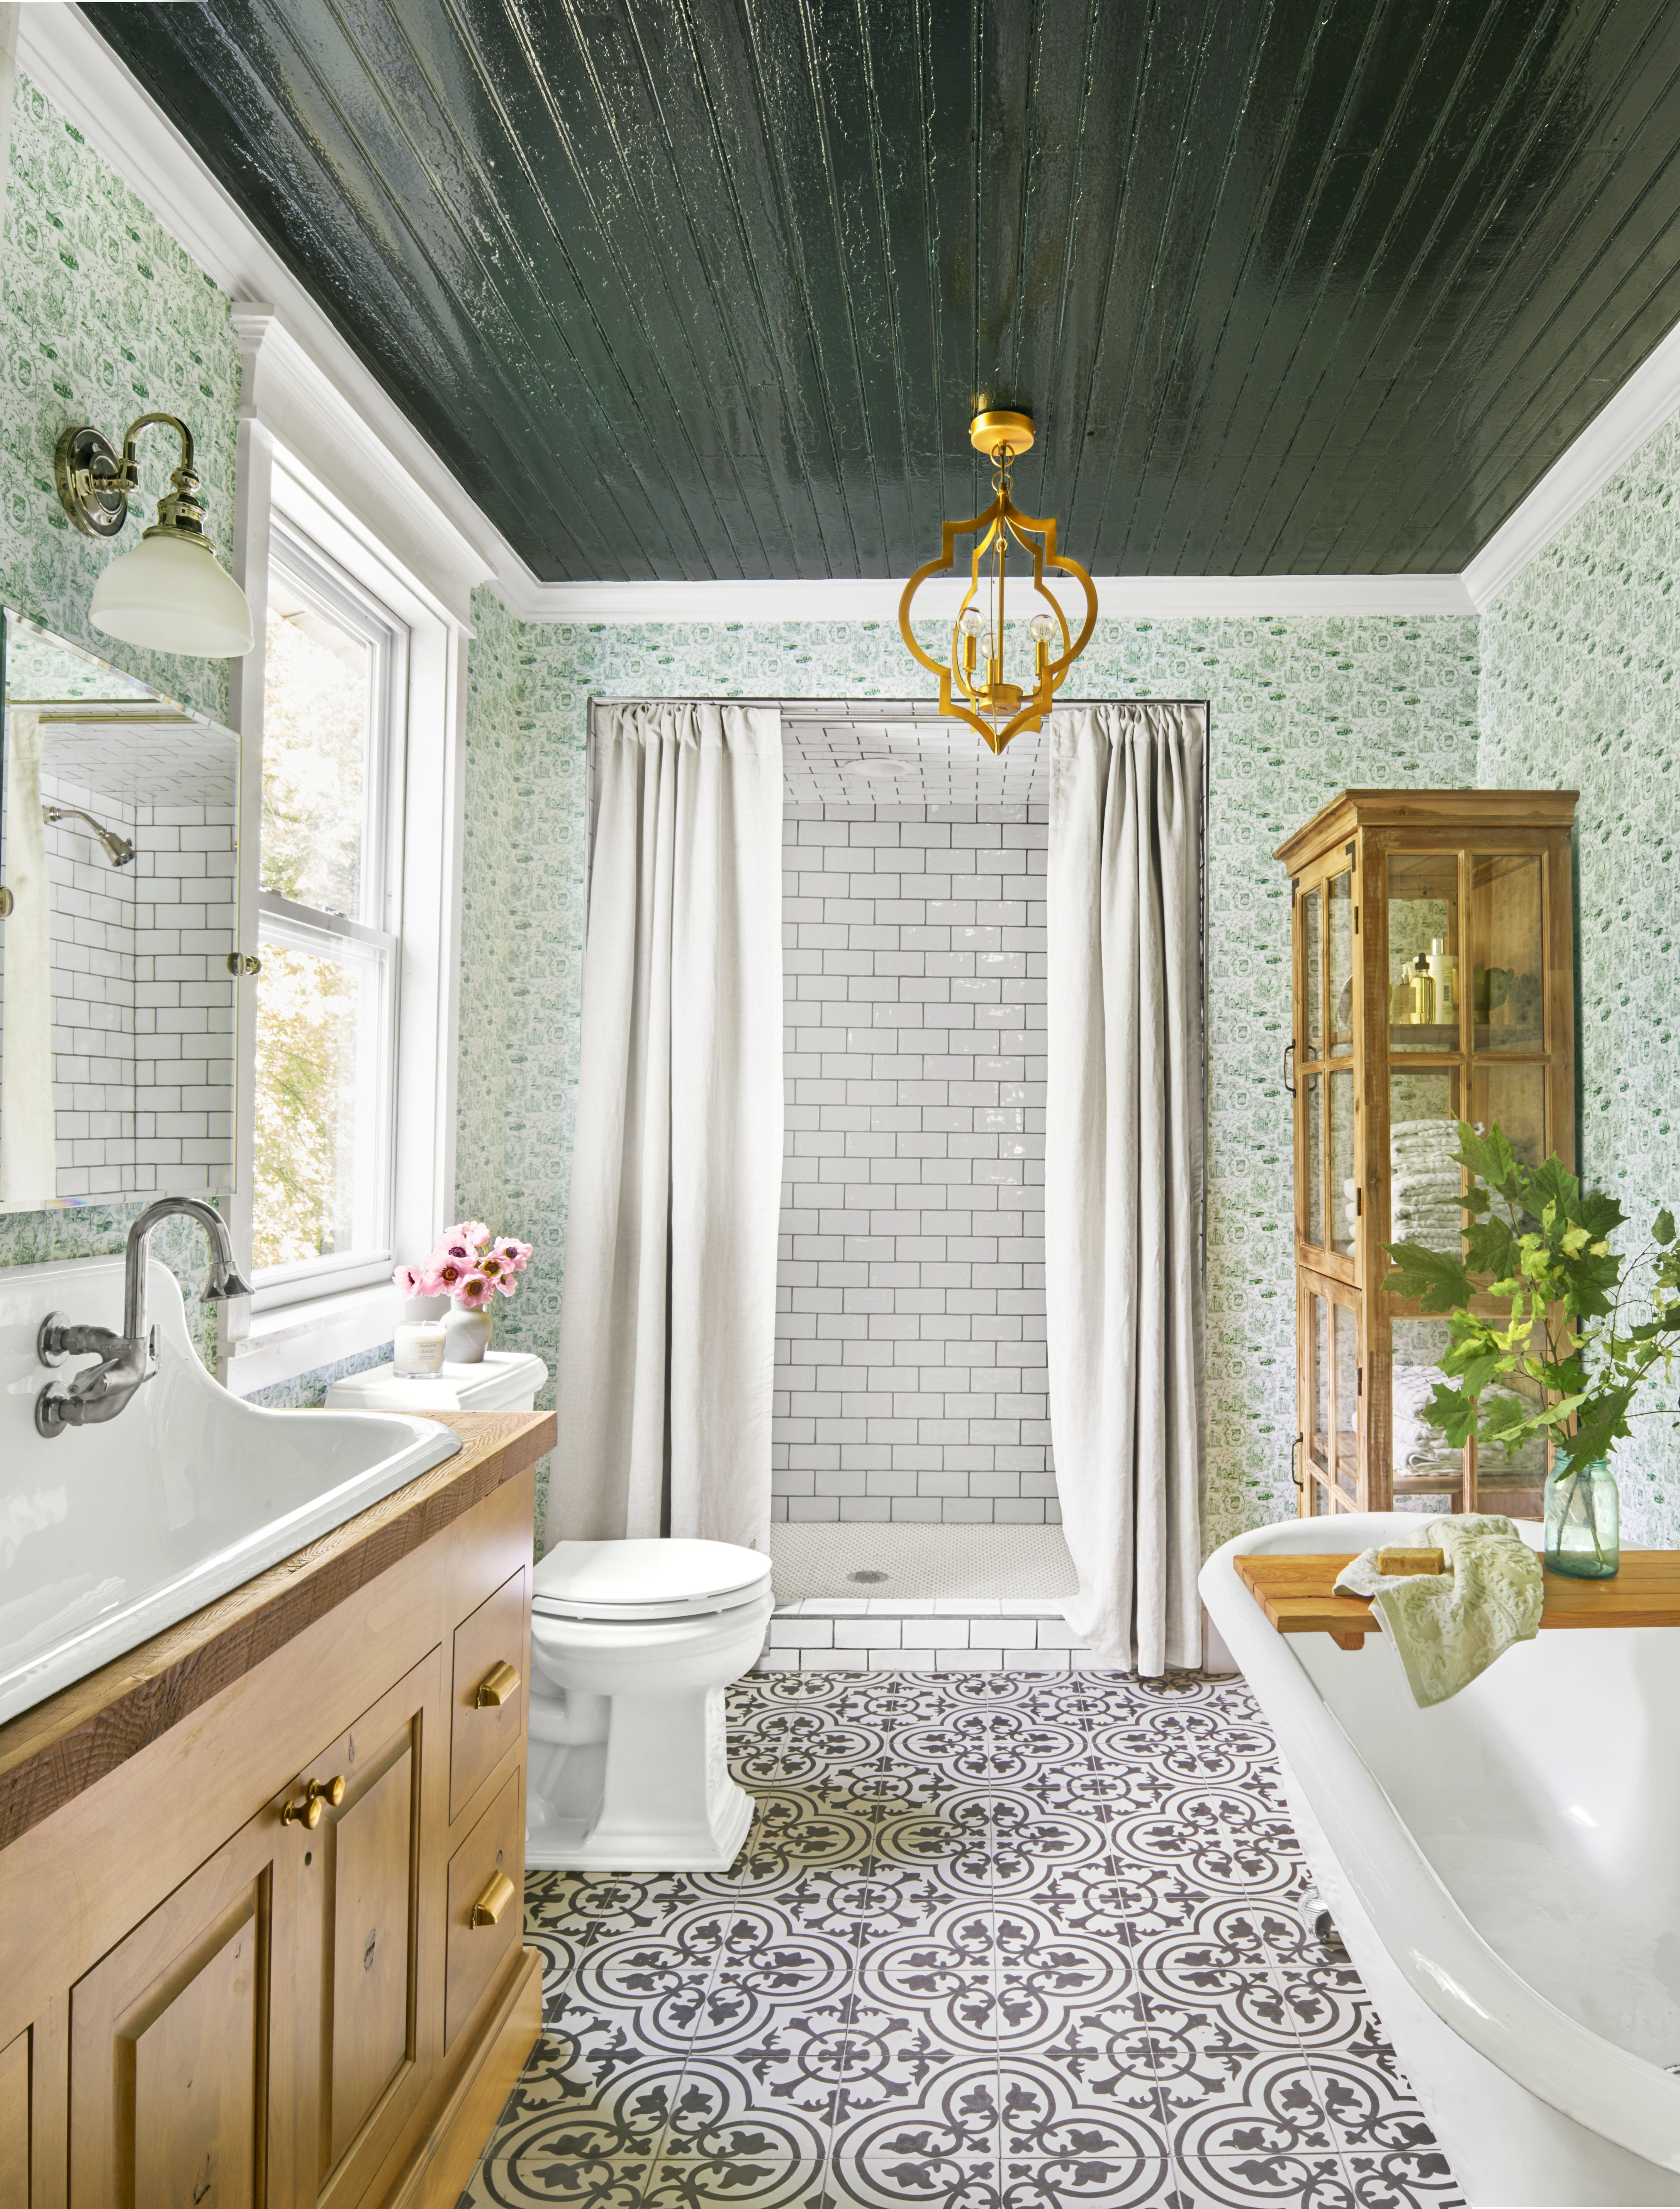 12 Bathroom Decorating Ideas - Pictures of Bathroom Decor and Designs